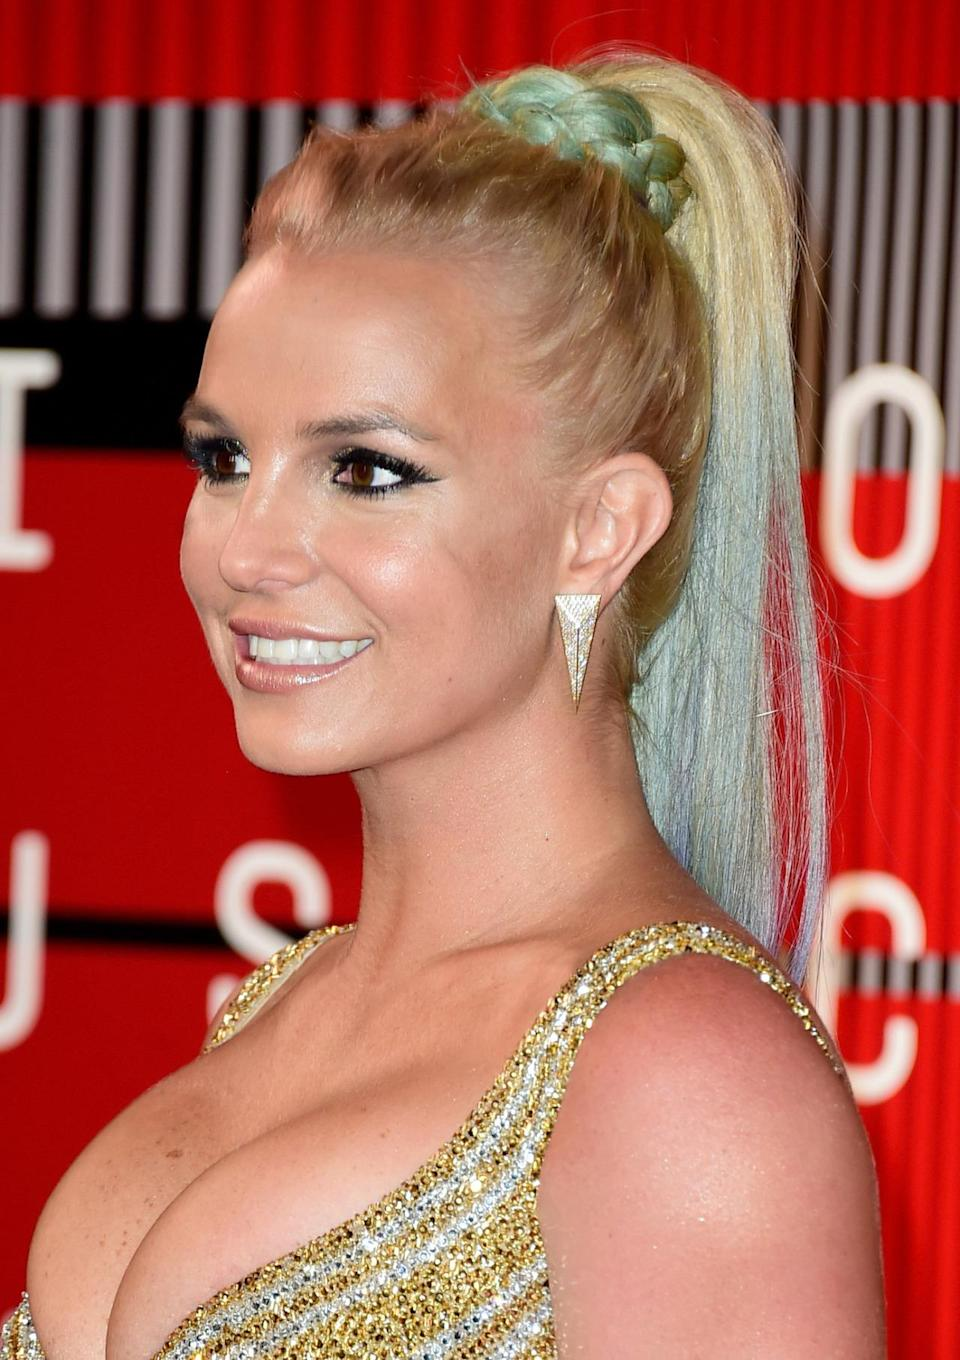 <p>The pop queen arrived at the VMAs in a very <i>I Dream of Jeannie </i>look. Her high pony was wrapped with a braid at the crown turning blue/green/and purple in the braid and ends for an on-trend mermaid style.</p><p>Source: Getty Images<br></p>